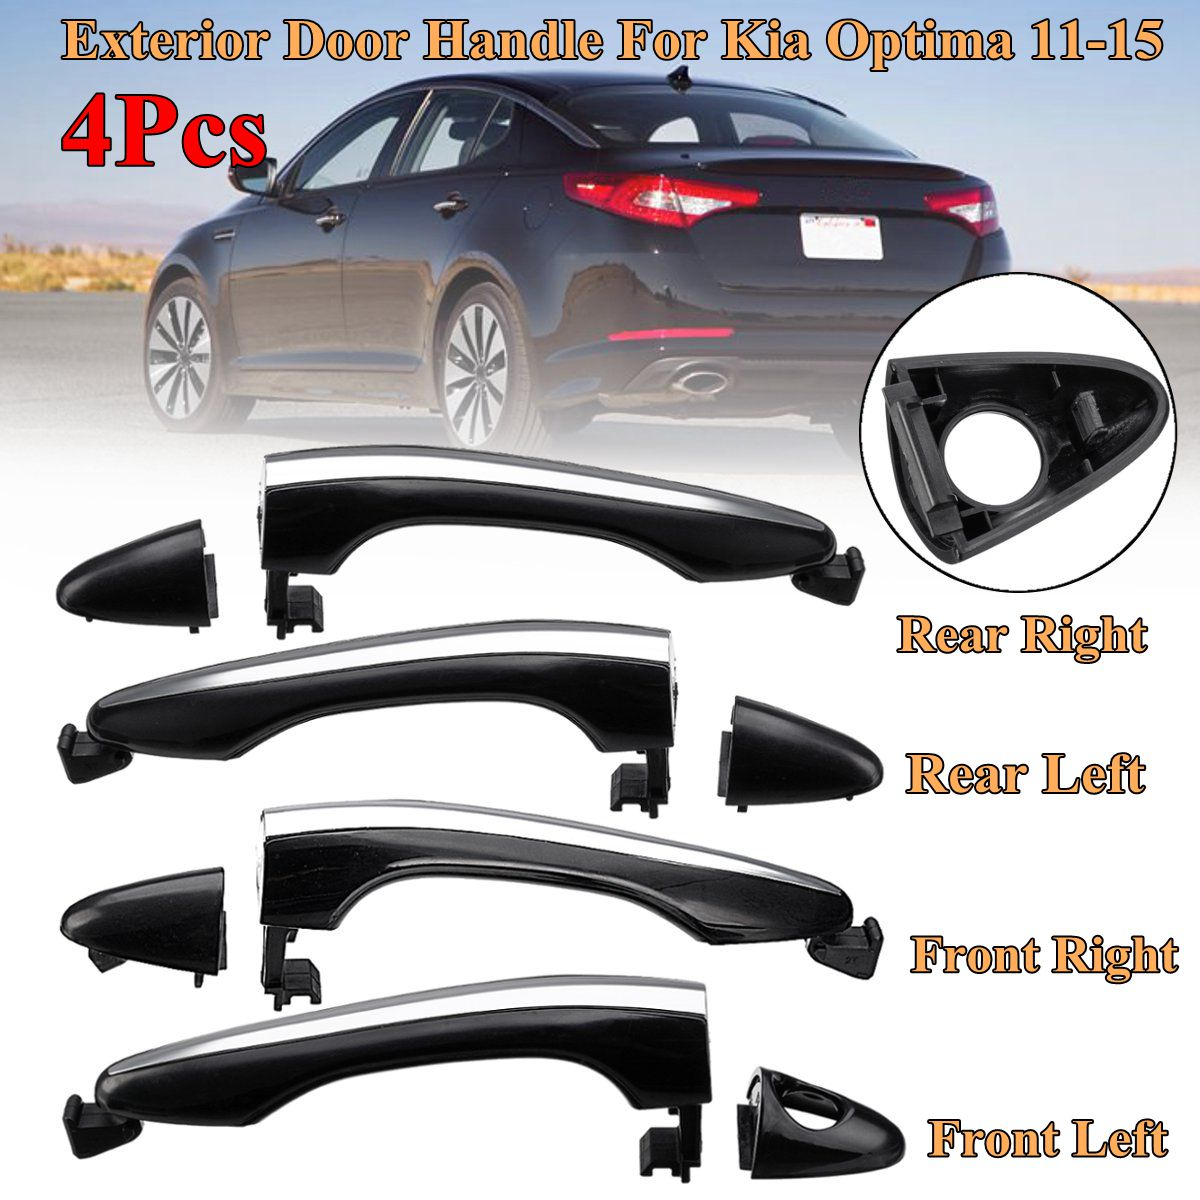 Exterior Door Handle For 2011-2015 Hyundai Sonata Front Passenger Chrome Plastic